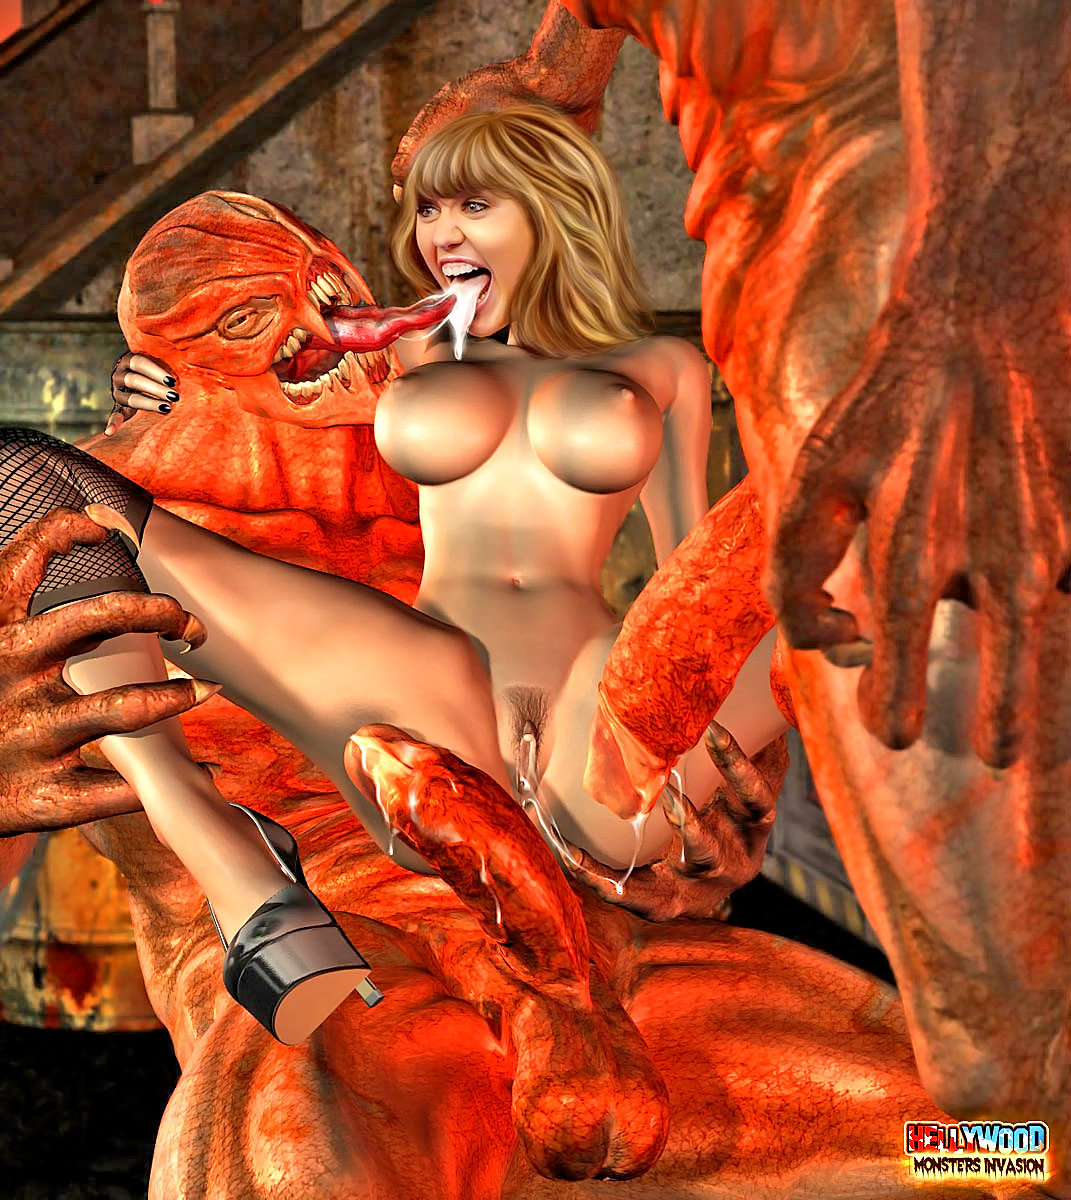 Manga monsters nude adult images